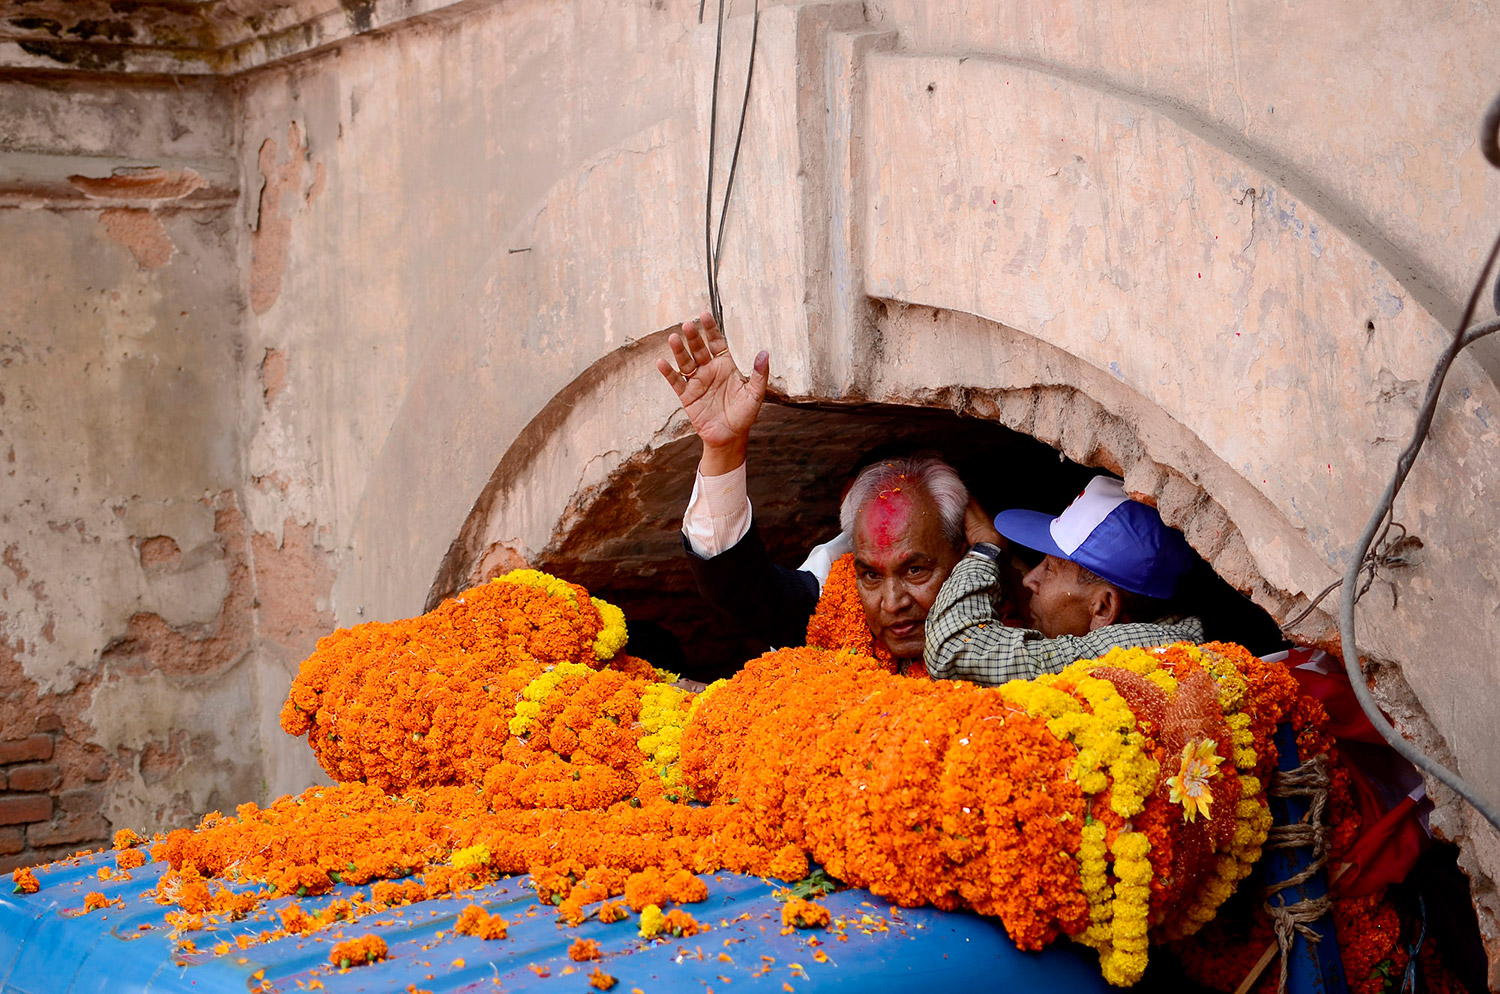 Supporters of Khum Bahadur Khadka celebrate his release from prison with a garland weighing 111 kg. Khadka had served 14 months in prison after he was found guilty of abusing his power as the minister for Physical Planning and Works by embezzling a huge amount of state fund. October 2013. Photo: Prakash Lama